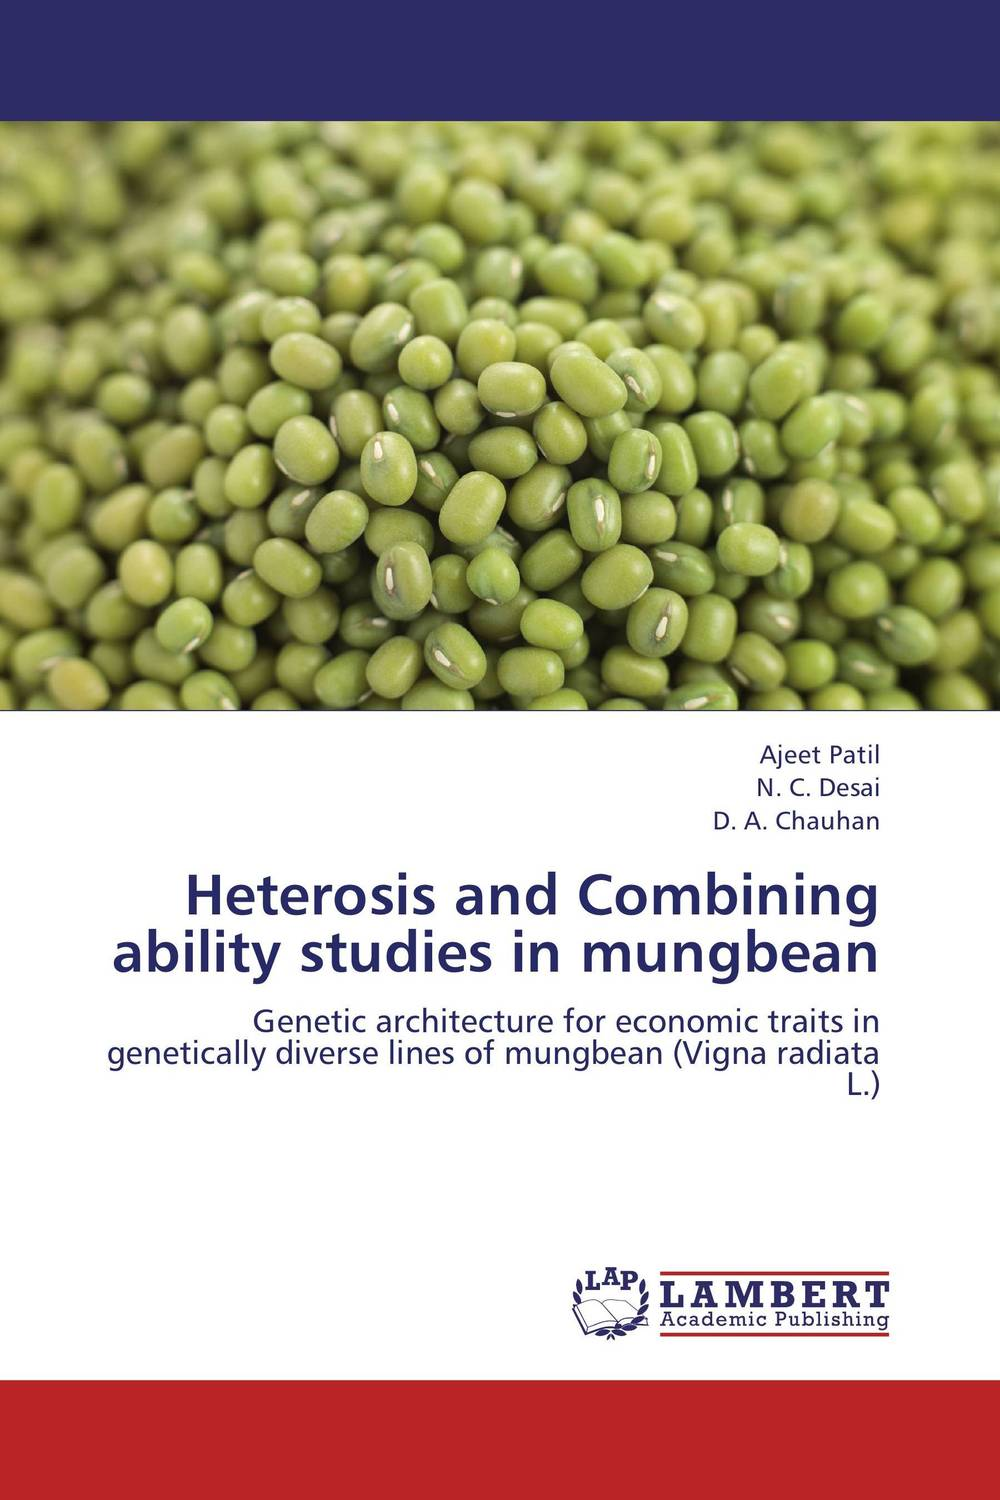 Heterosis and Combining ability studies in mungbean heterosis and combining ability in maize zea mays l a research